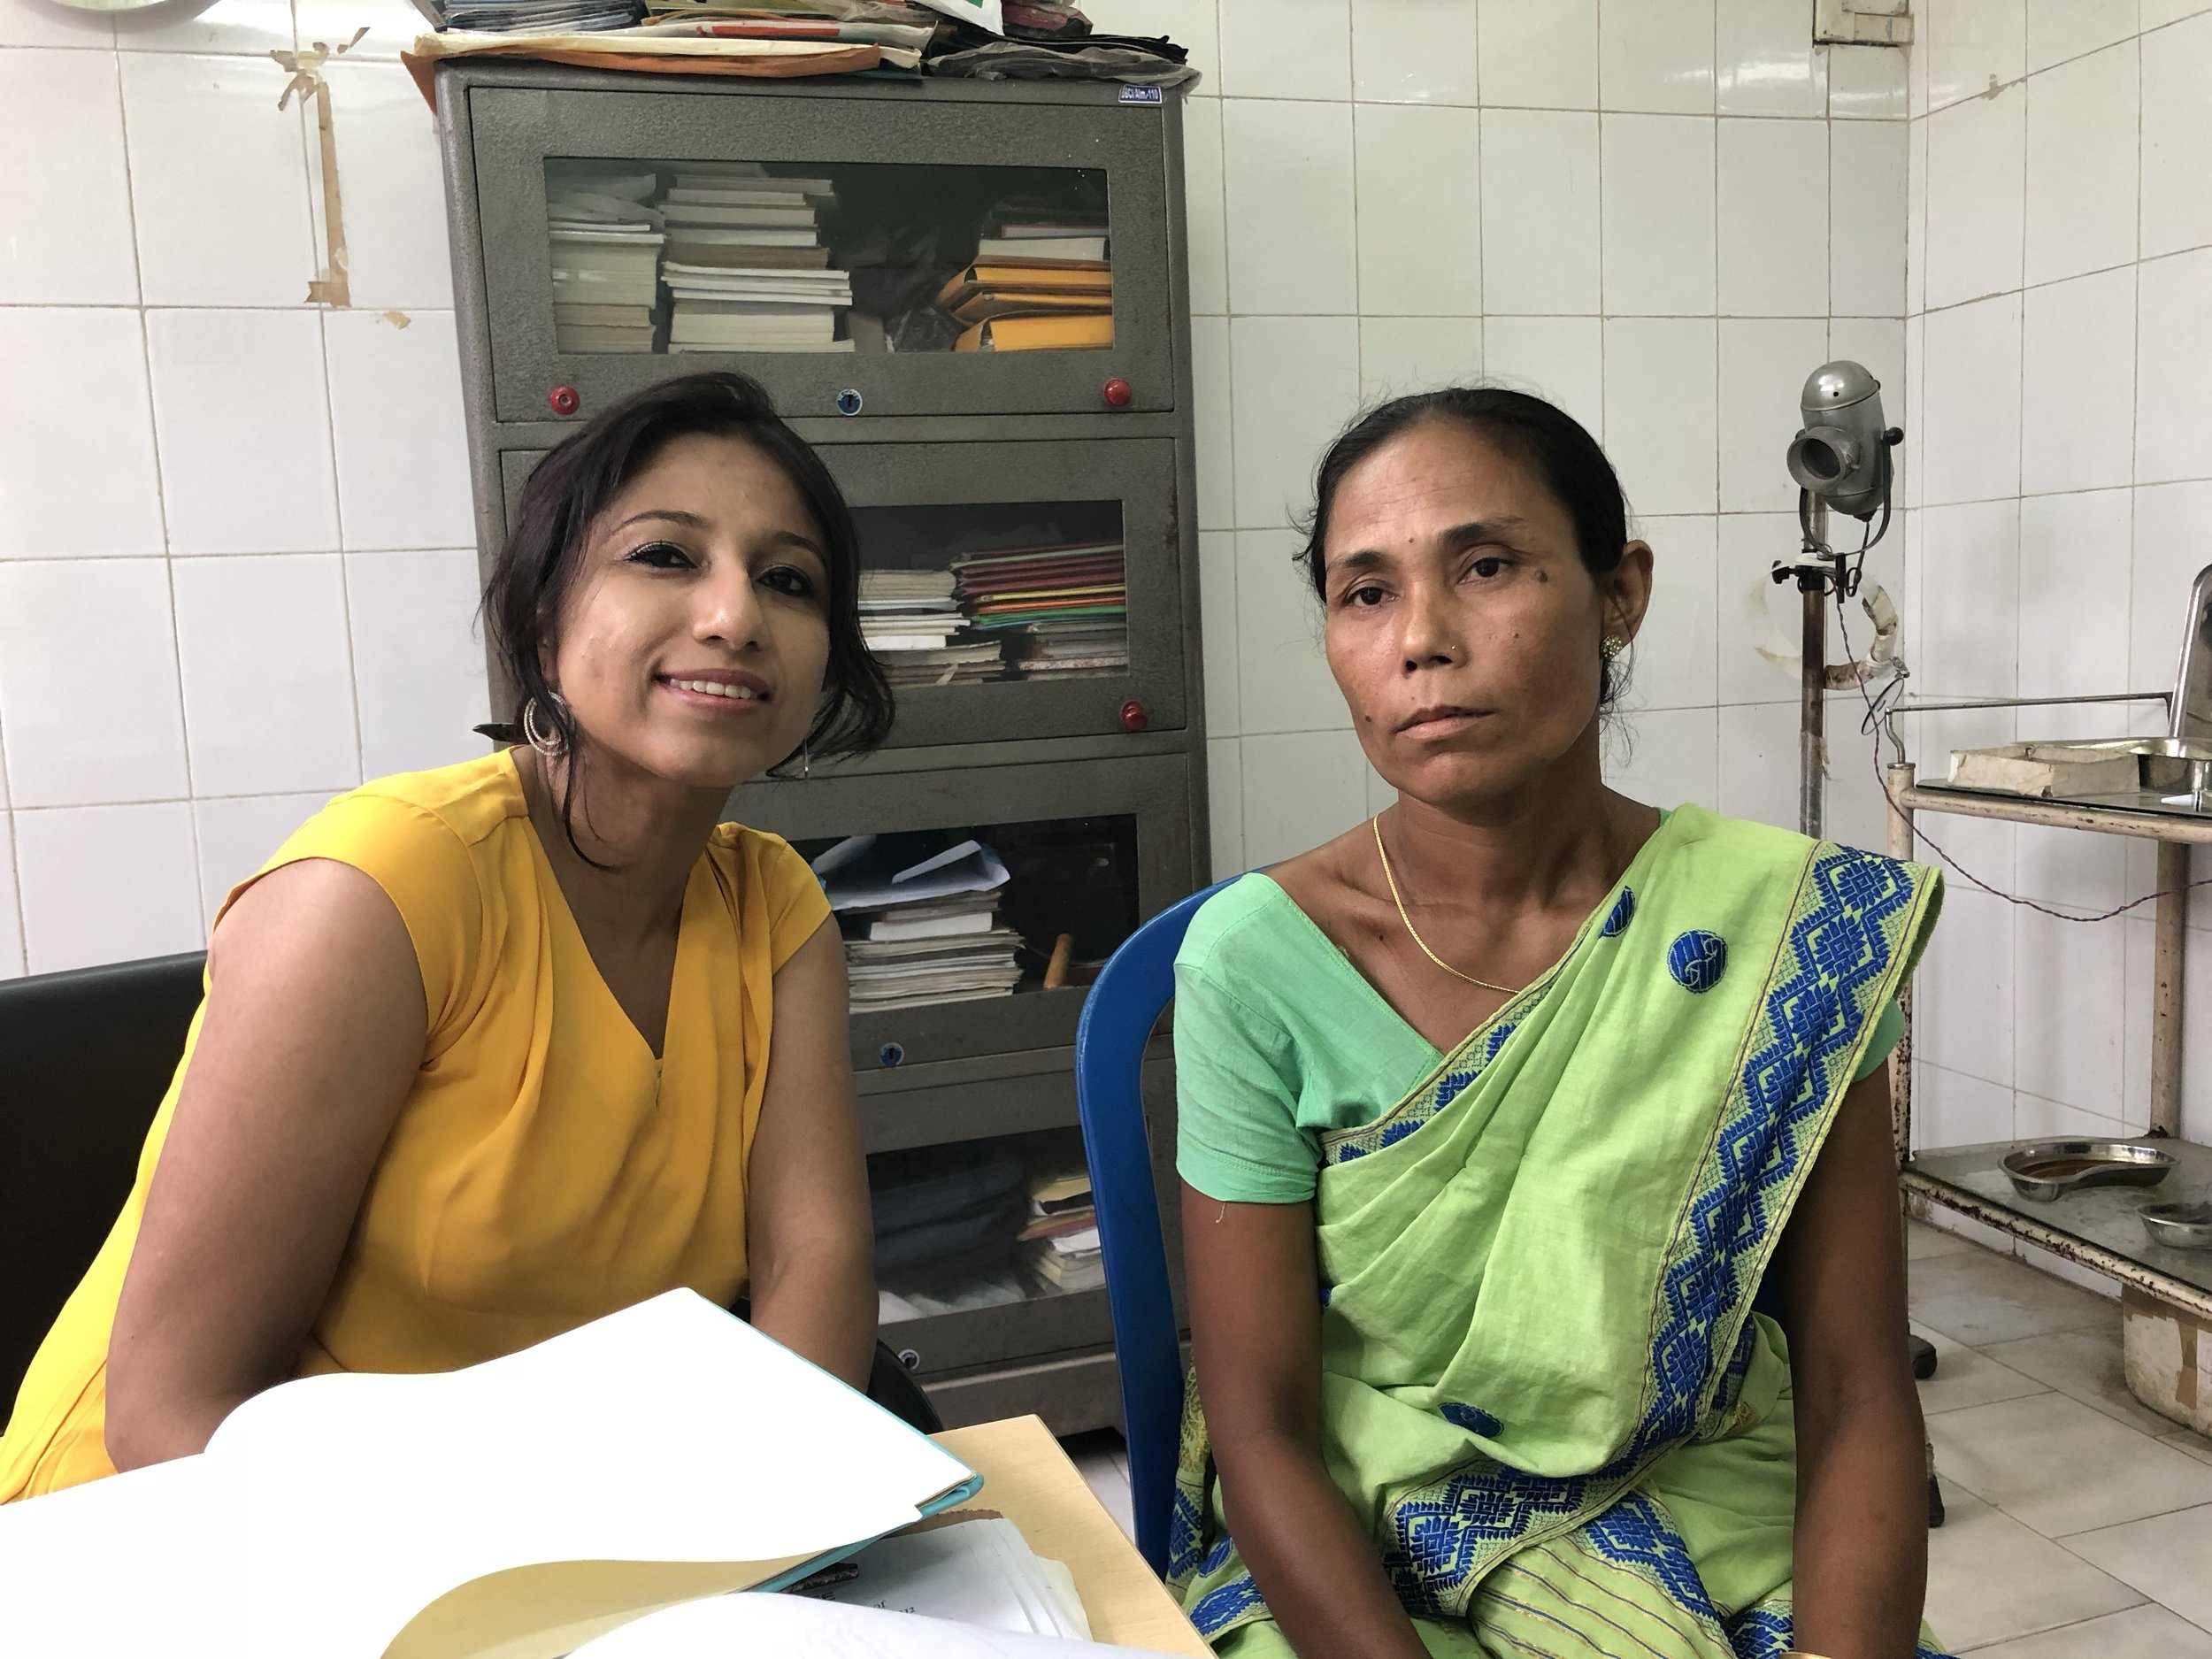 On 13th July, 2018, with Mrs. Sabita Rabha at Dr. B. Borooah Cancer Center. Mrs. Rabha came to the OPD of BCCI with a big tumor on the right breast and also small one on the left breast. My interview (to be posted soon) determined the ignorance existing among the women. Mrs. Rabha was not aware that this could be a serious issue.